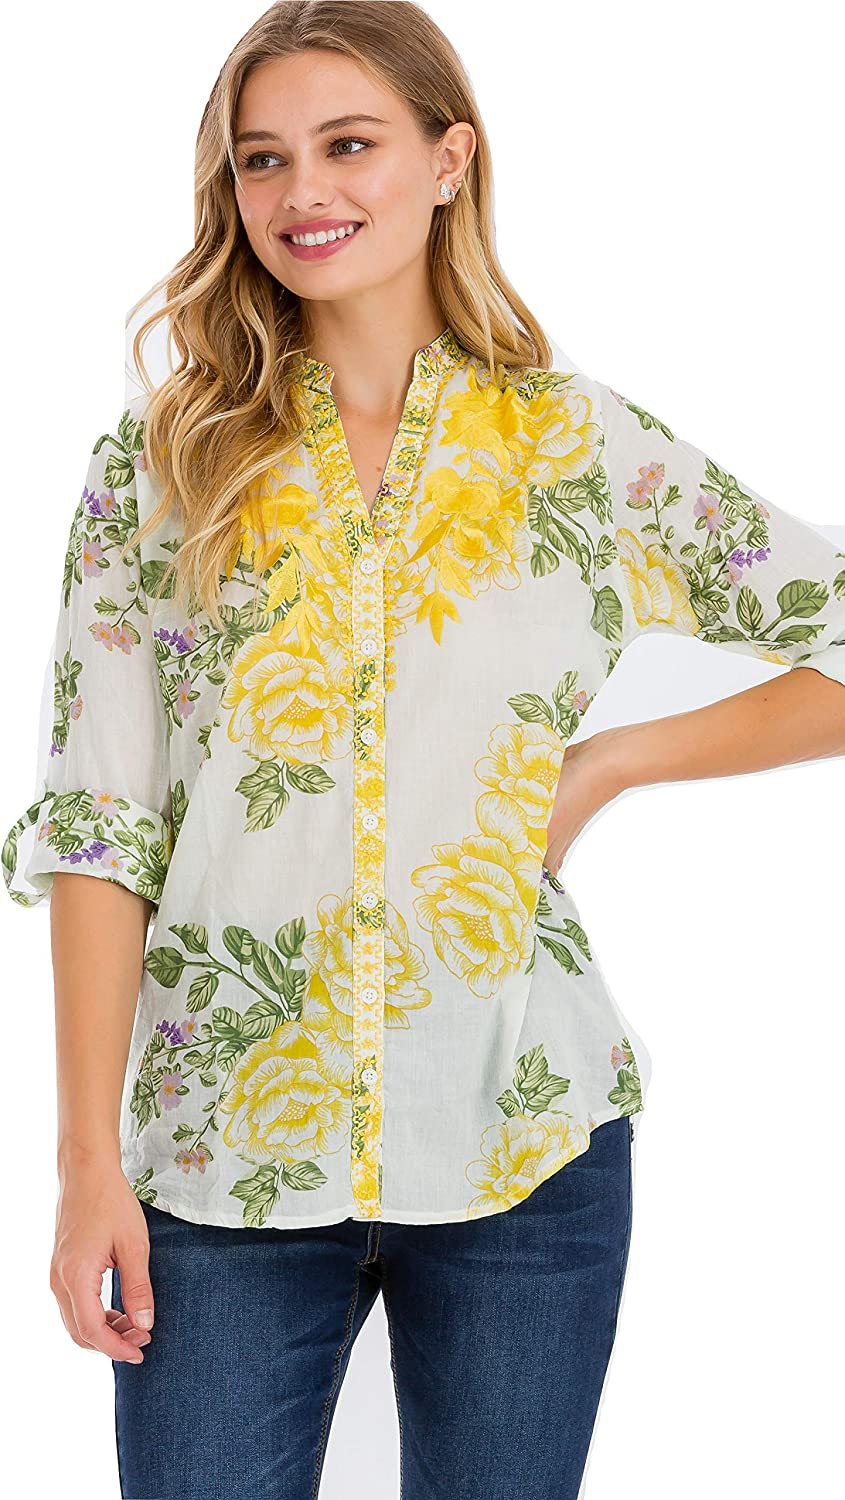 CLUTCH BAZAAR White Floral Button-Down Blouse with Yellow Embroidery